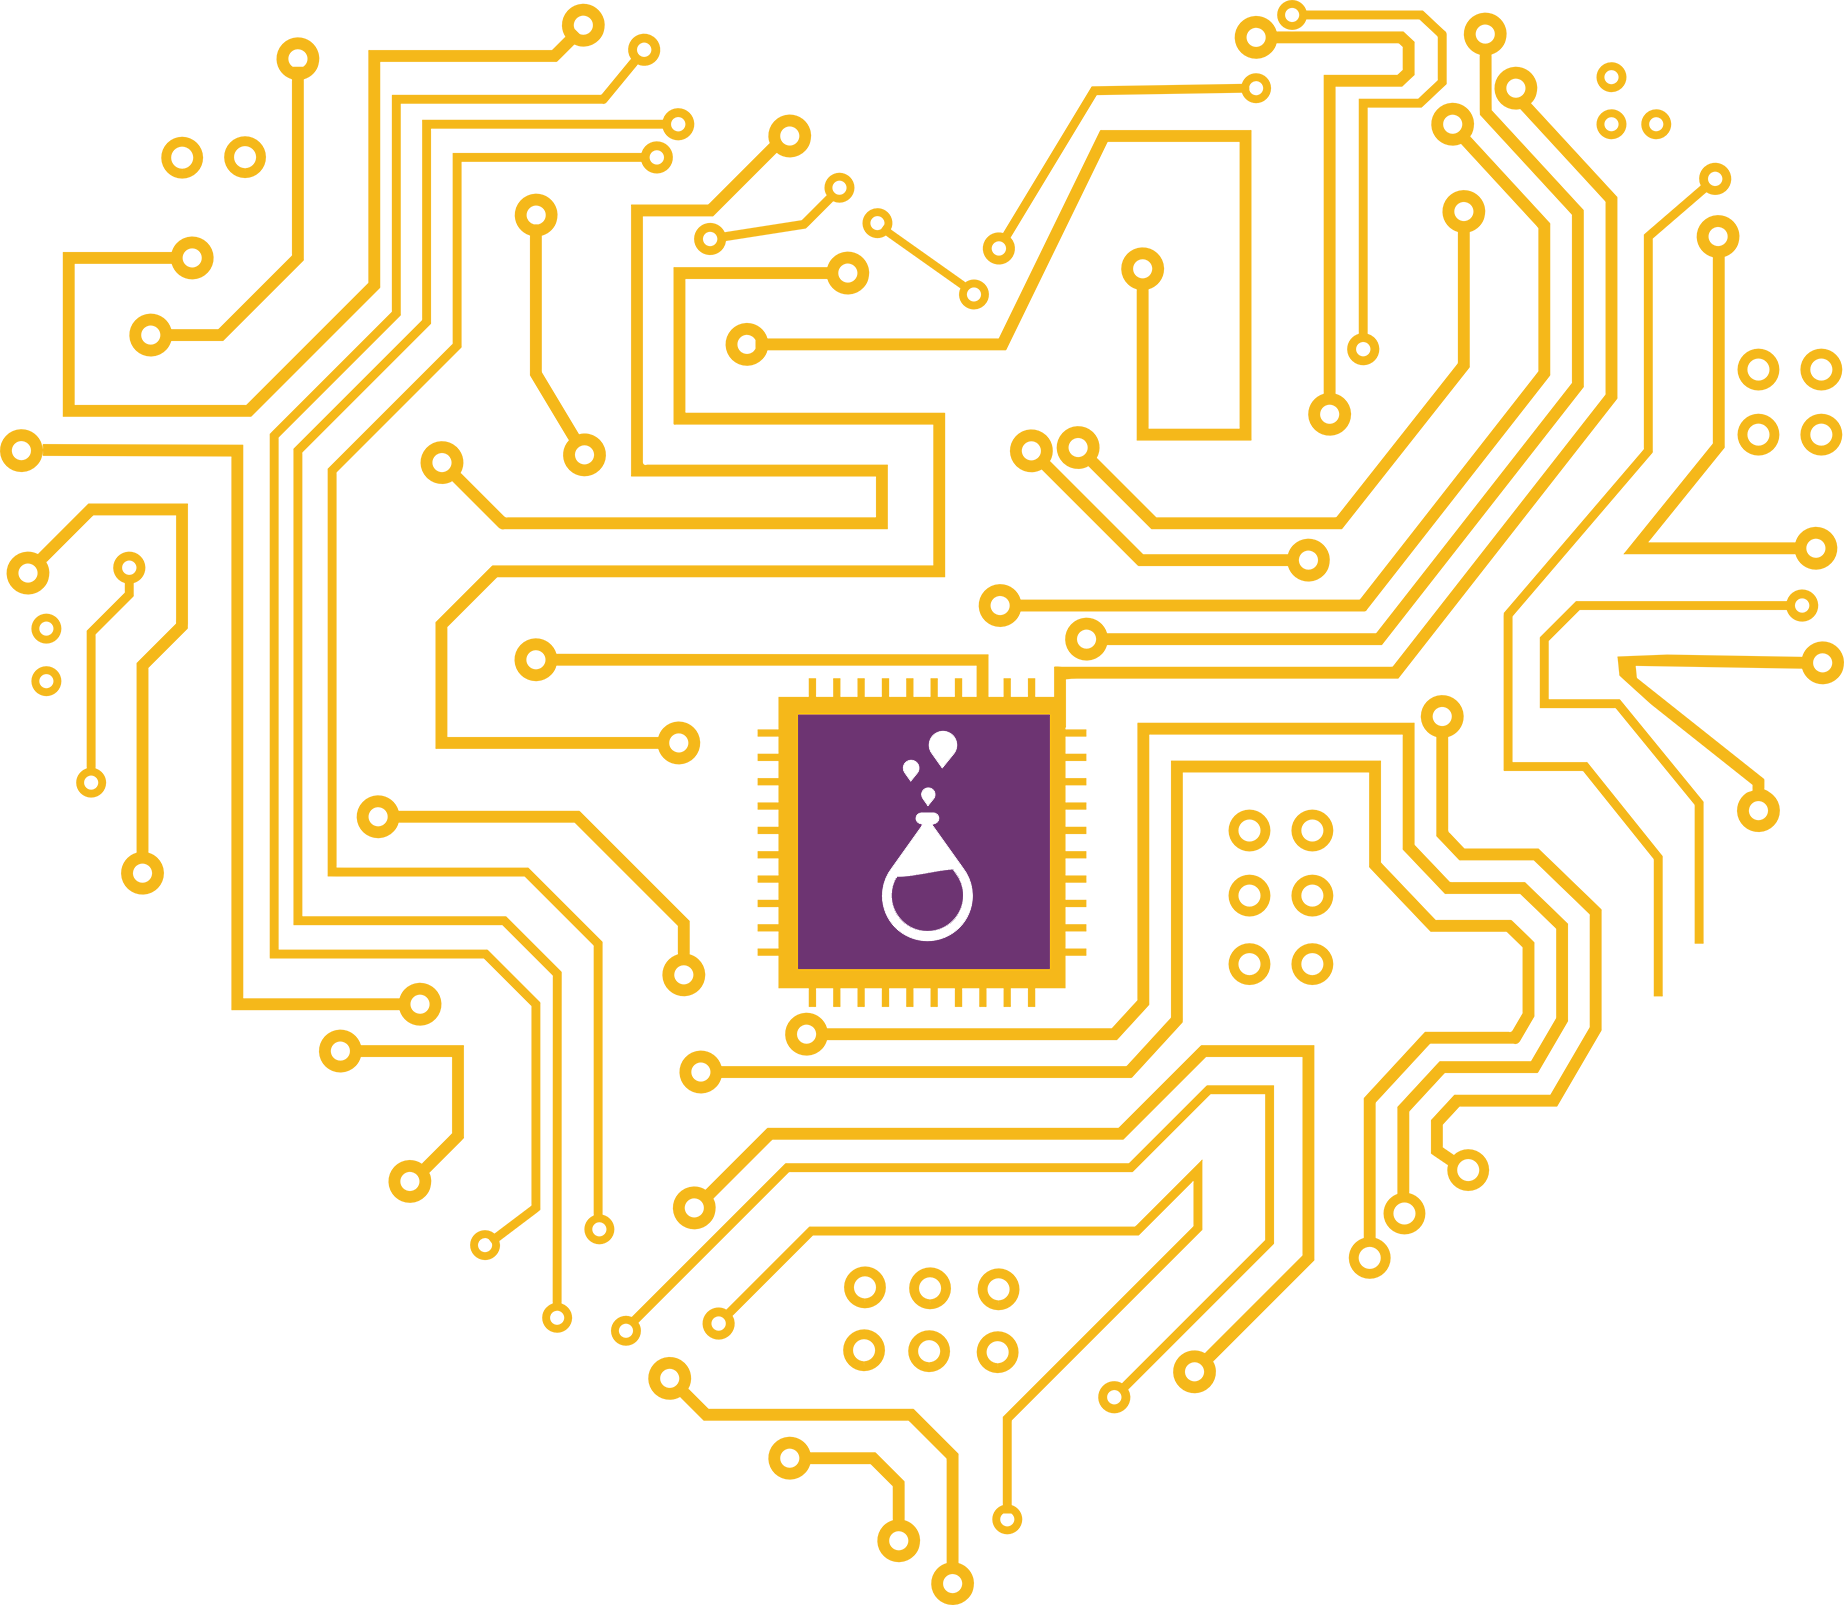 Brilliant Labs logo In the center of a heart formed by electric circuits